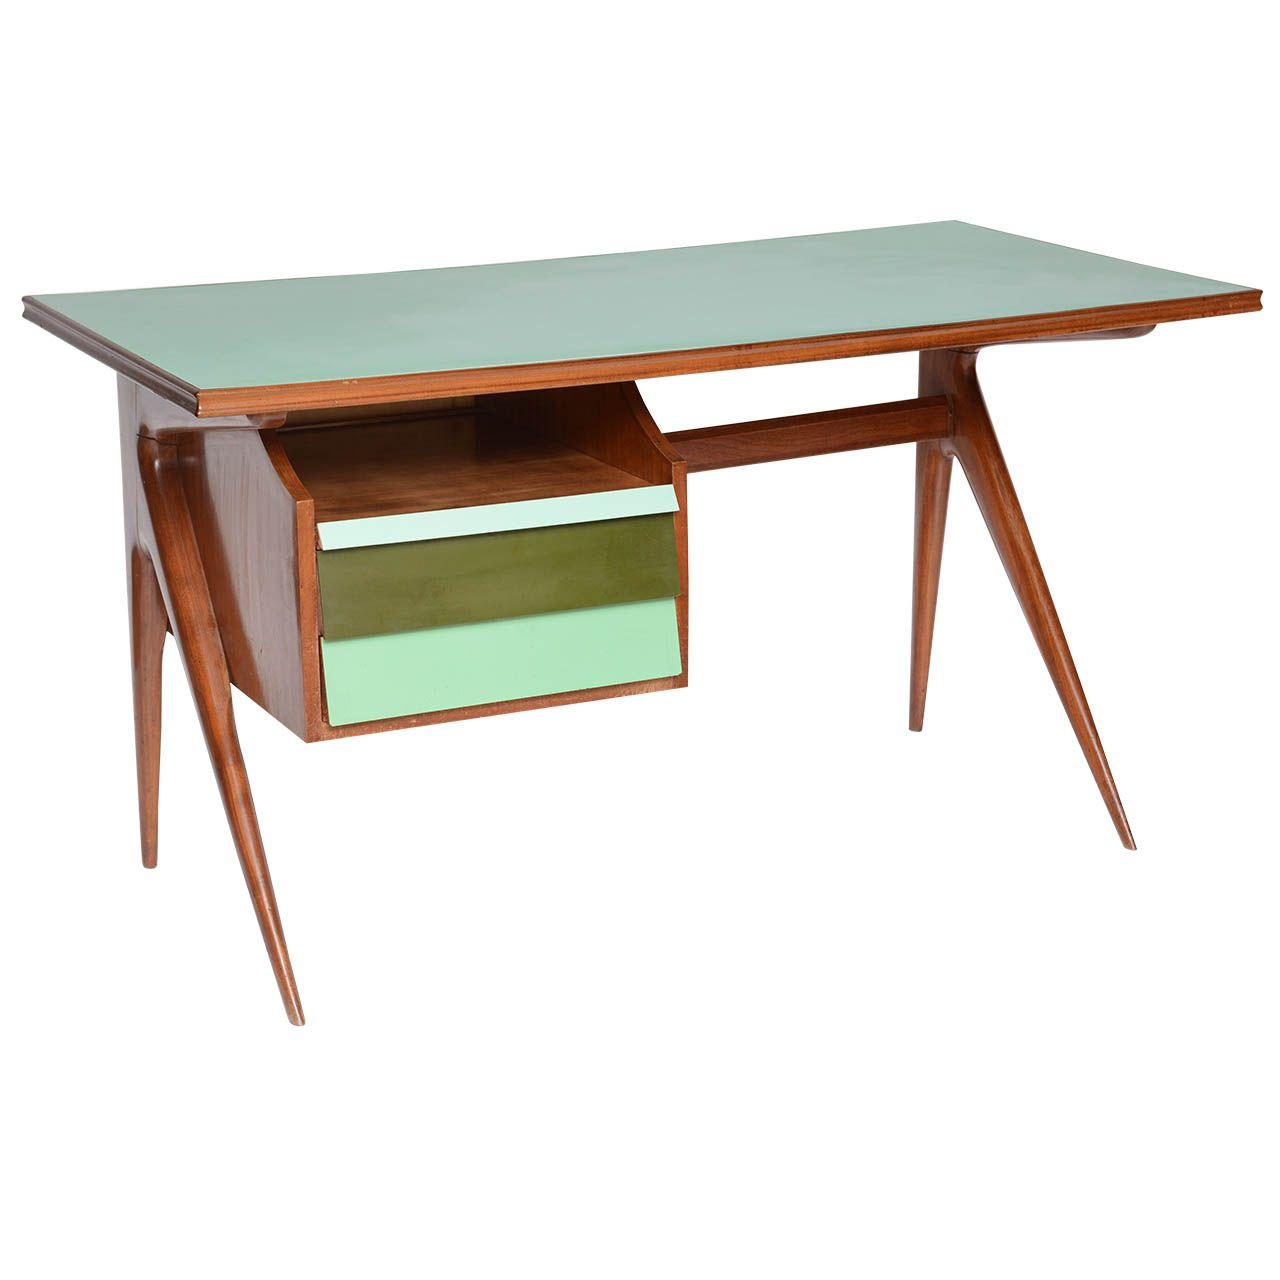 Italian Mid Century Laminate Writing Desk From A Unique Collection Of Antique And Modern Desks A Mid Century Furniture Diy Mcm Furniture Wood Furniture Store